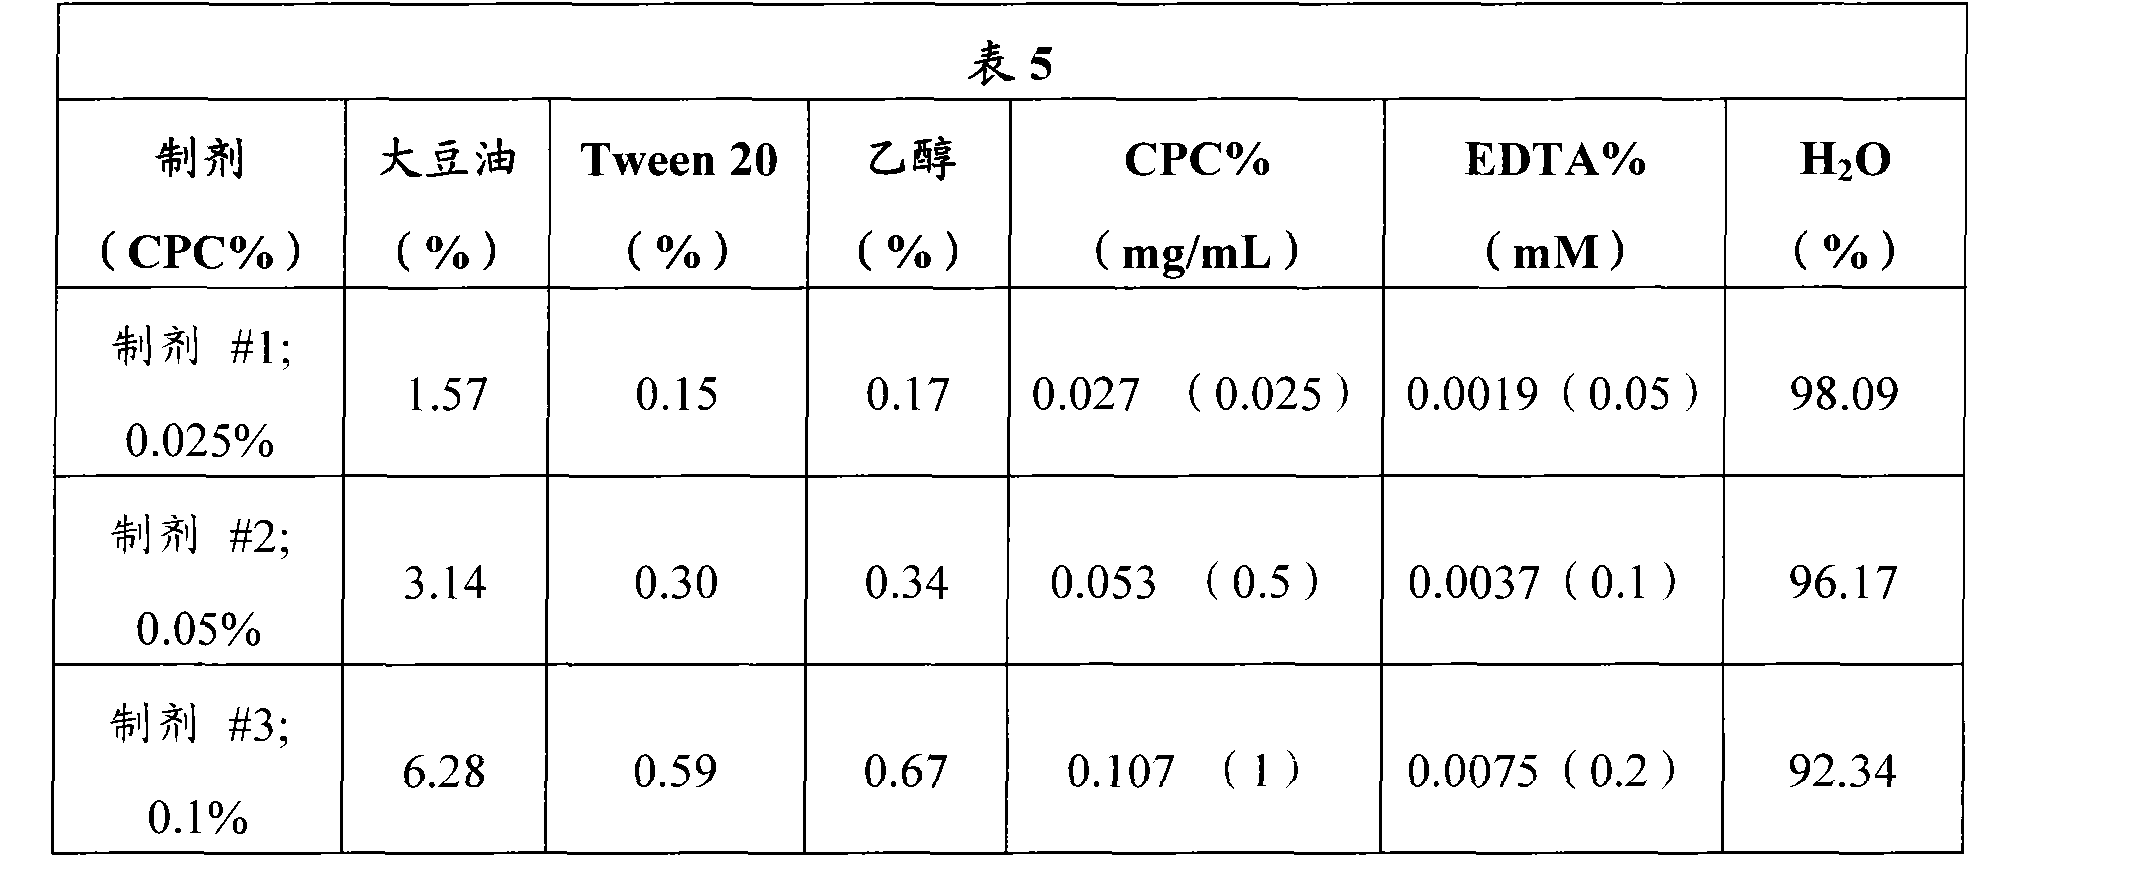 CN102083415A - Methods for treating herpes virus infections